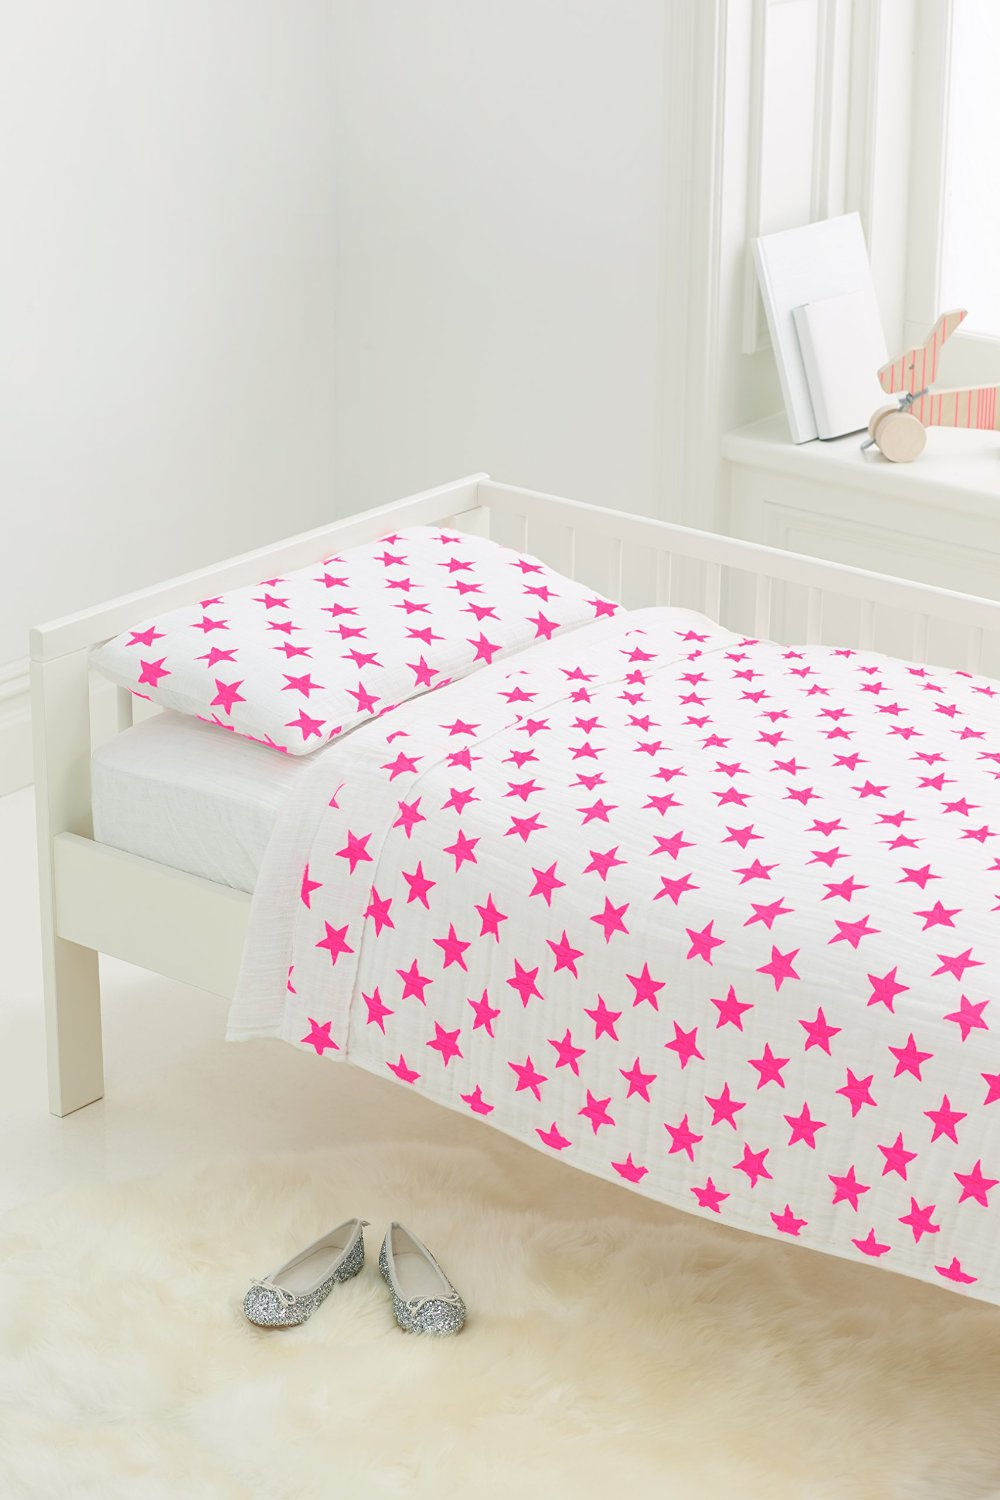 Amazon.com : aden + anais Classic Toddler Bed in a Bag - Liam the Brave Kids Bedding Sets include toddler bedding: toddler pillow, pillow case, flat sheet, and baby boy blanket : Baby